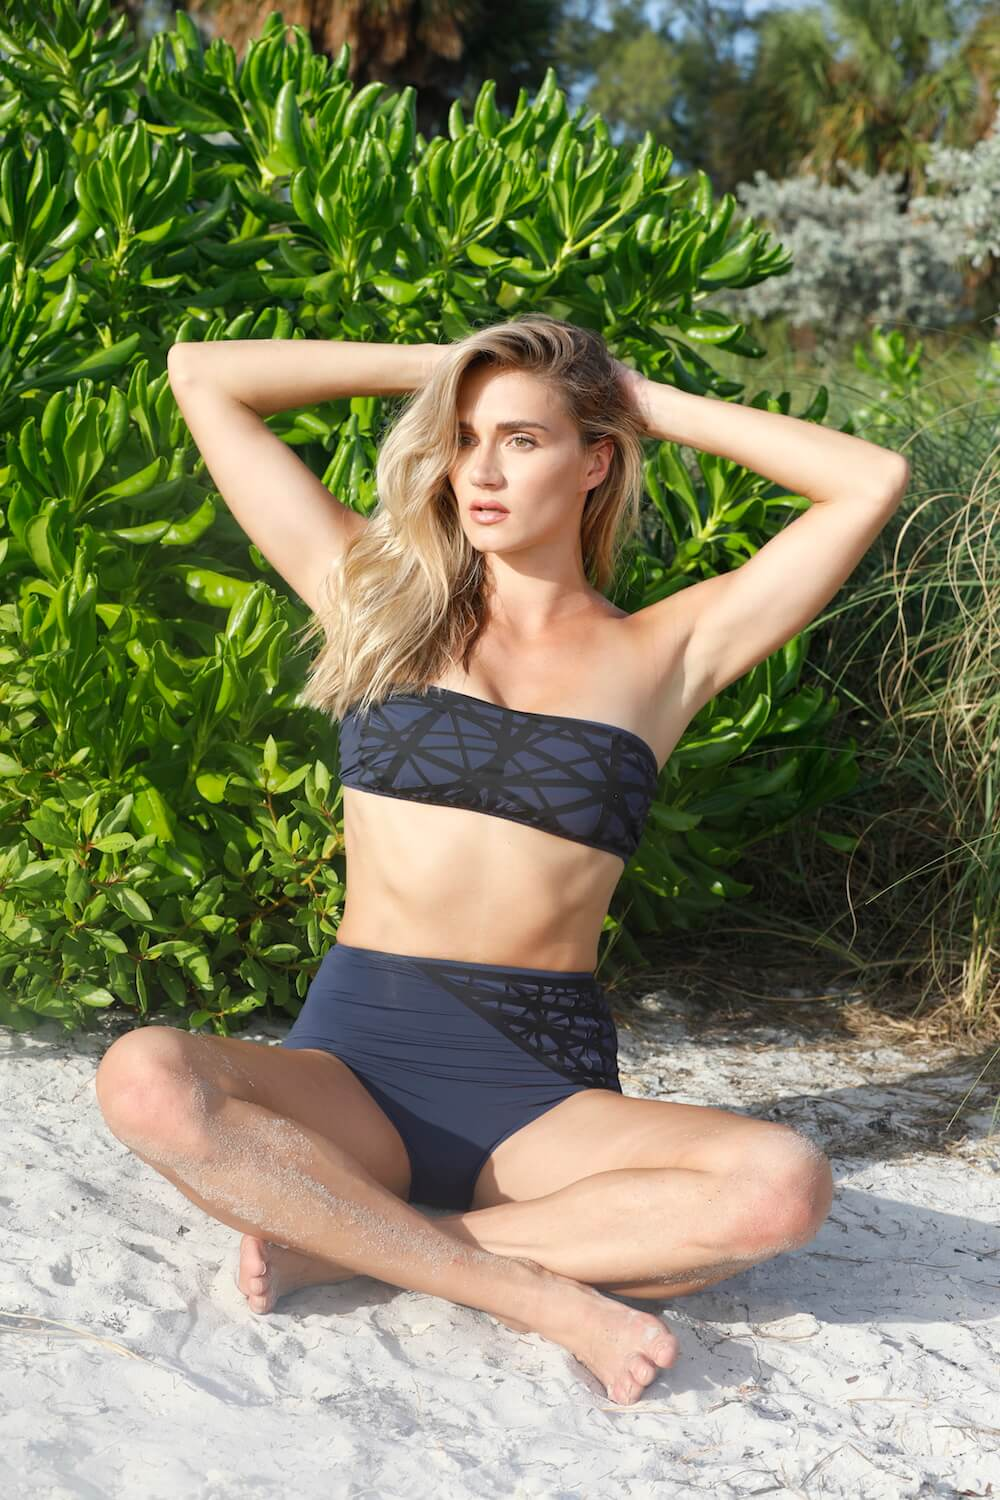 Model wears Lillian bandeau bikini top in navy with black laser details